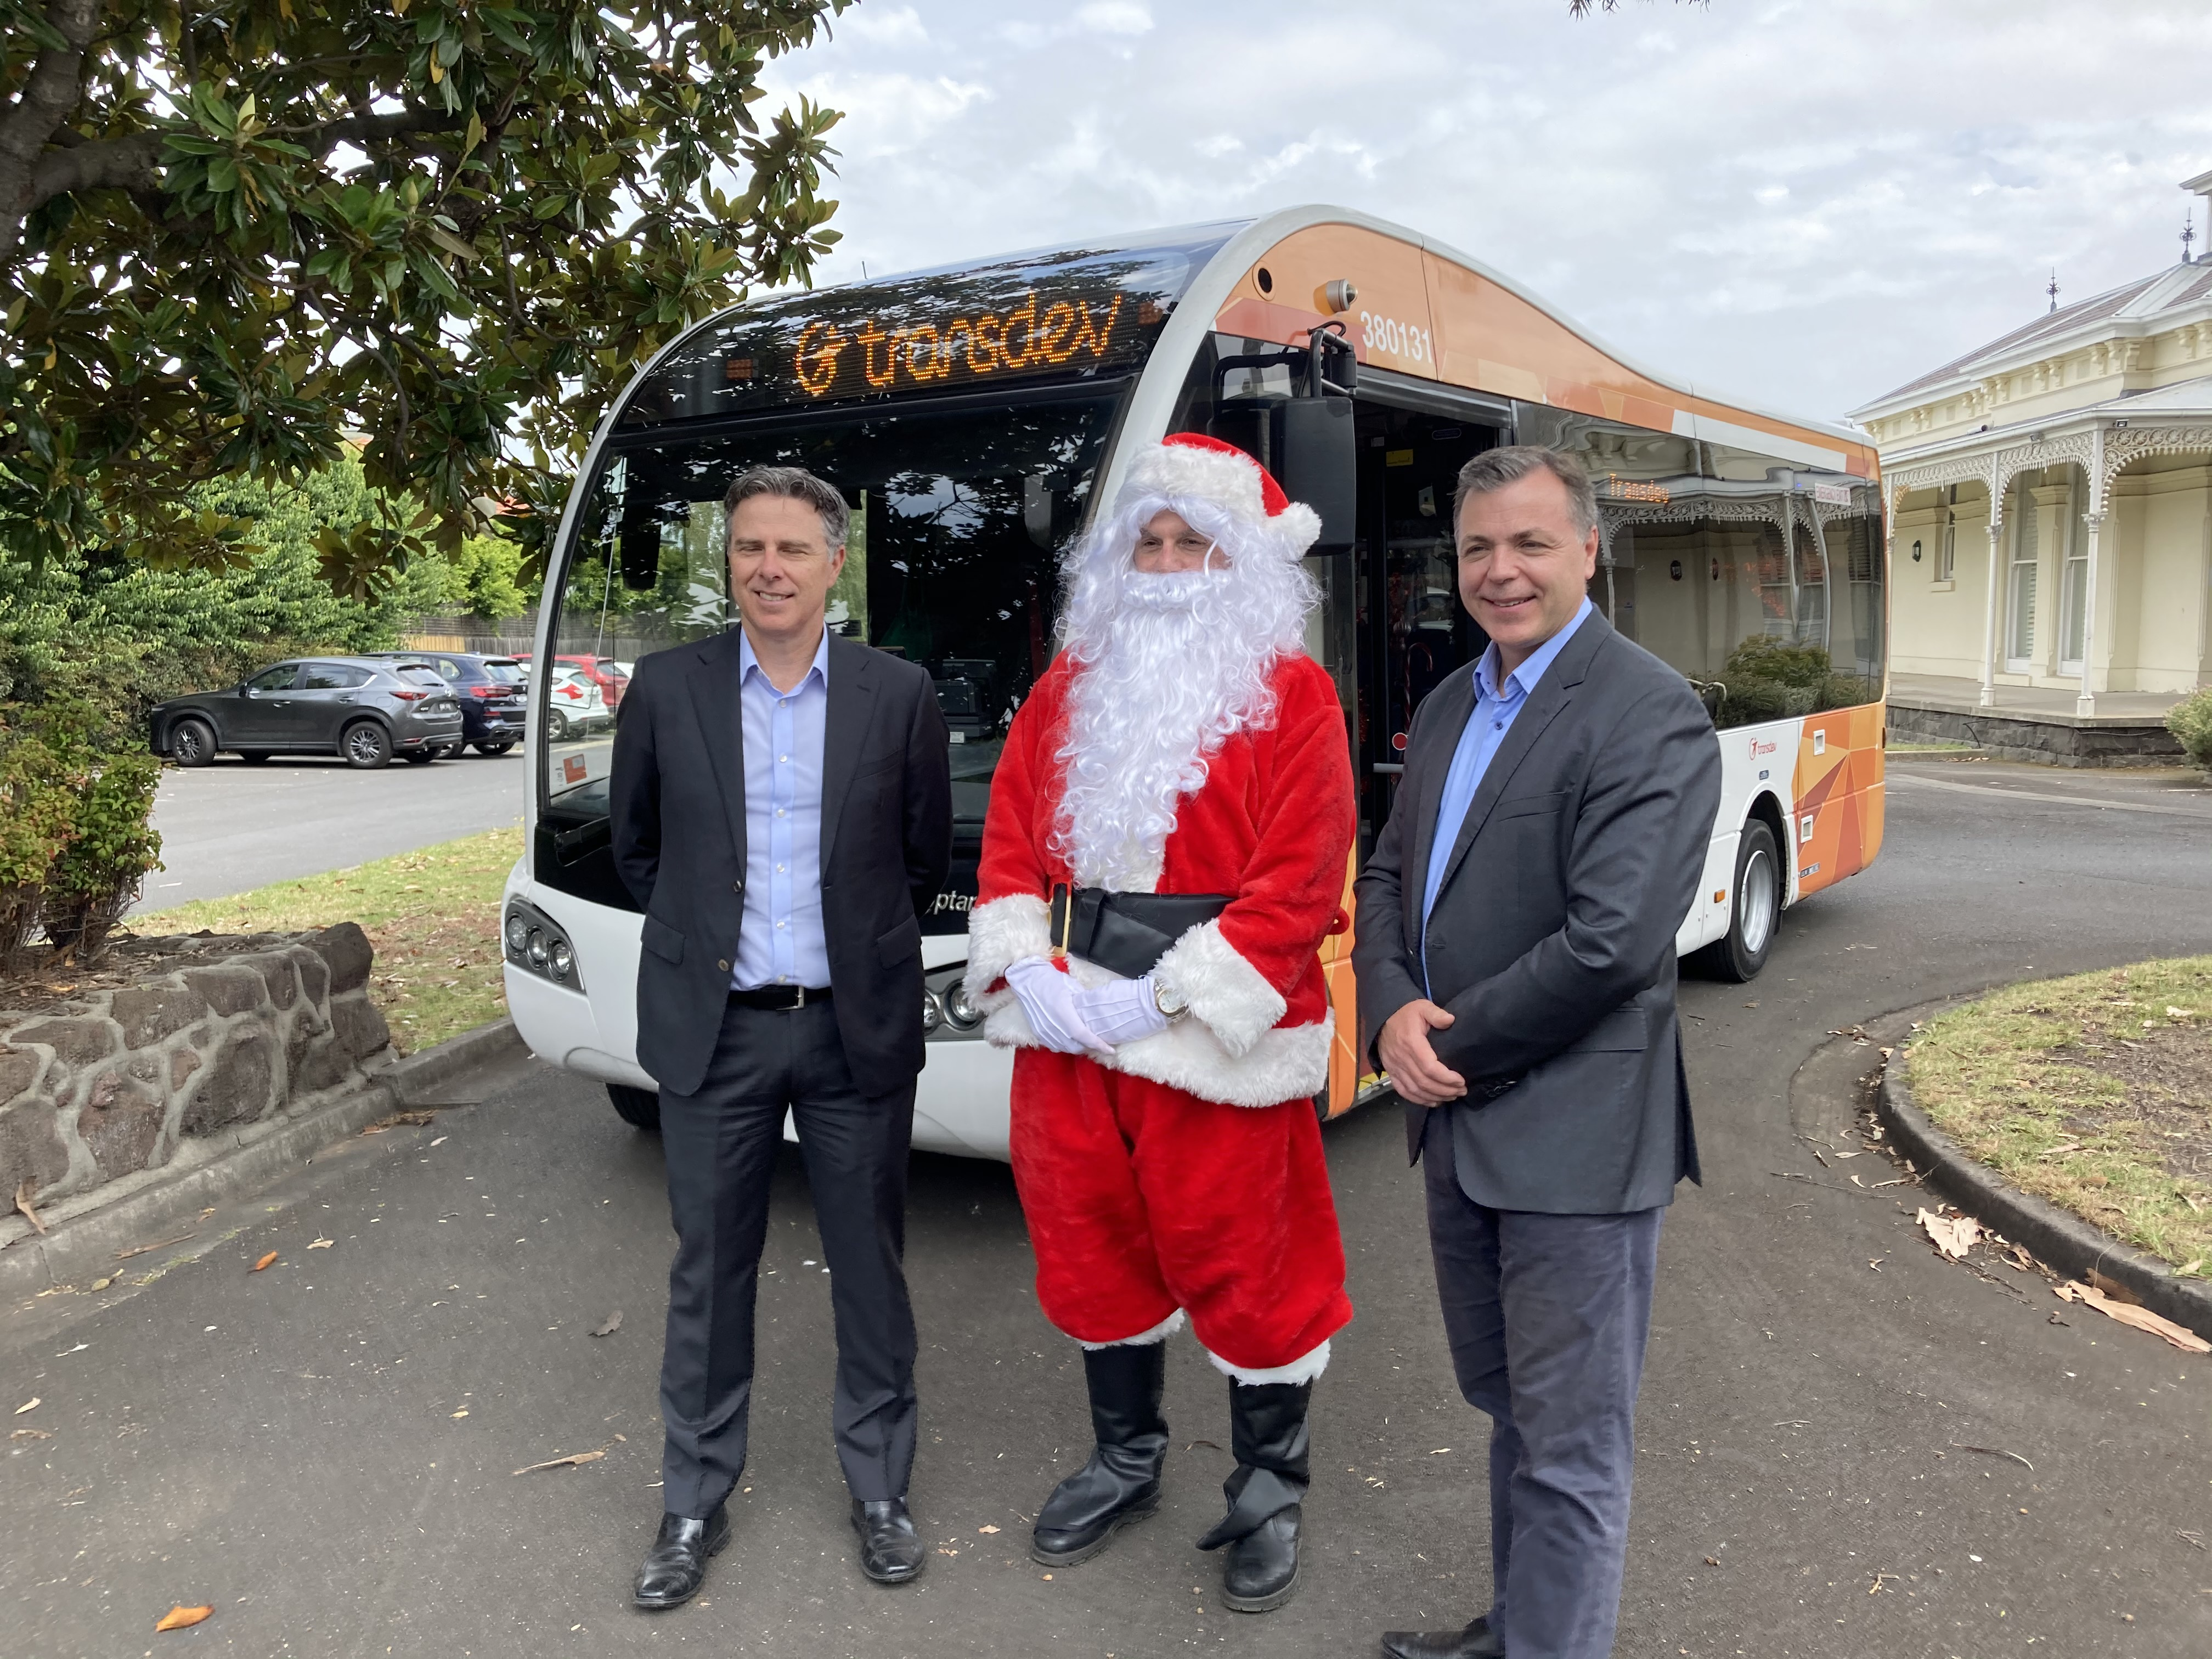 Santa and Transdev team up to spread Christmas cheer to some Very Special Kids